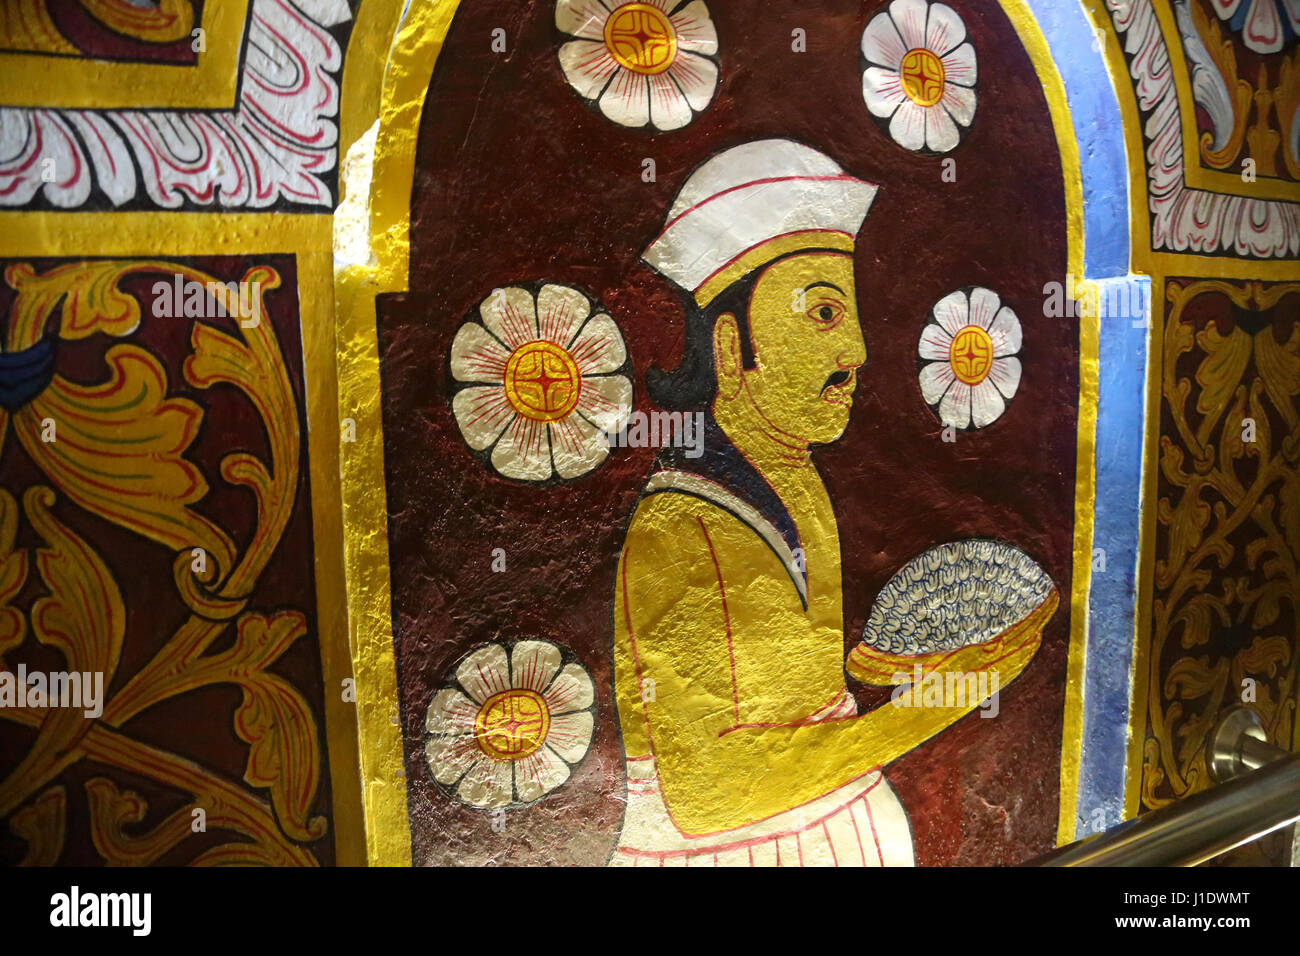 Kandy Sri Lanka Temple of the Tooth Wall Painting - Stock Image